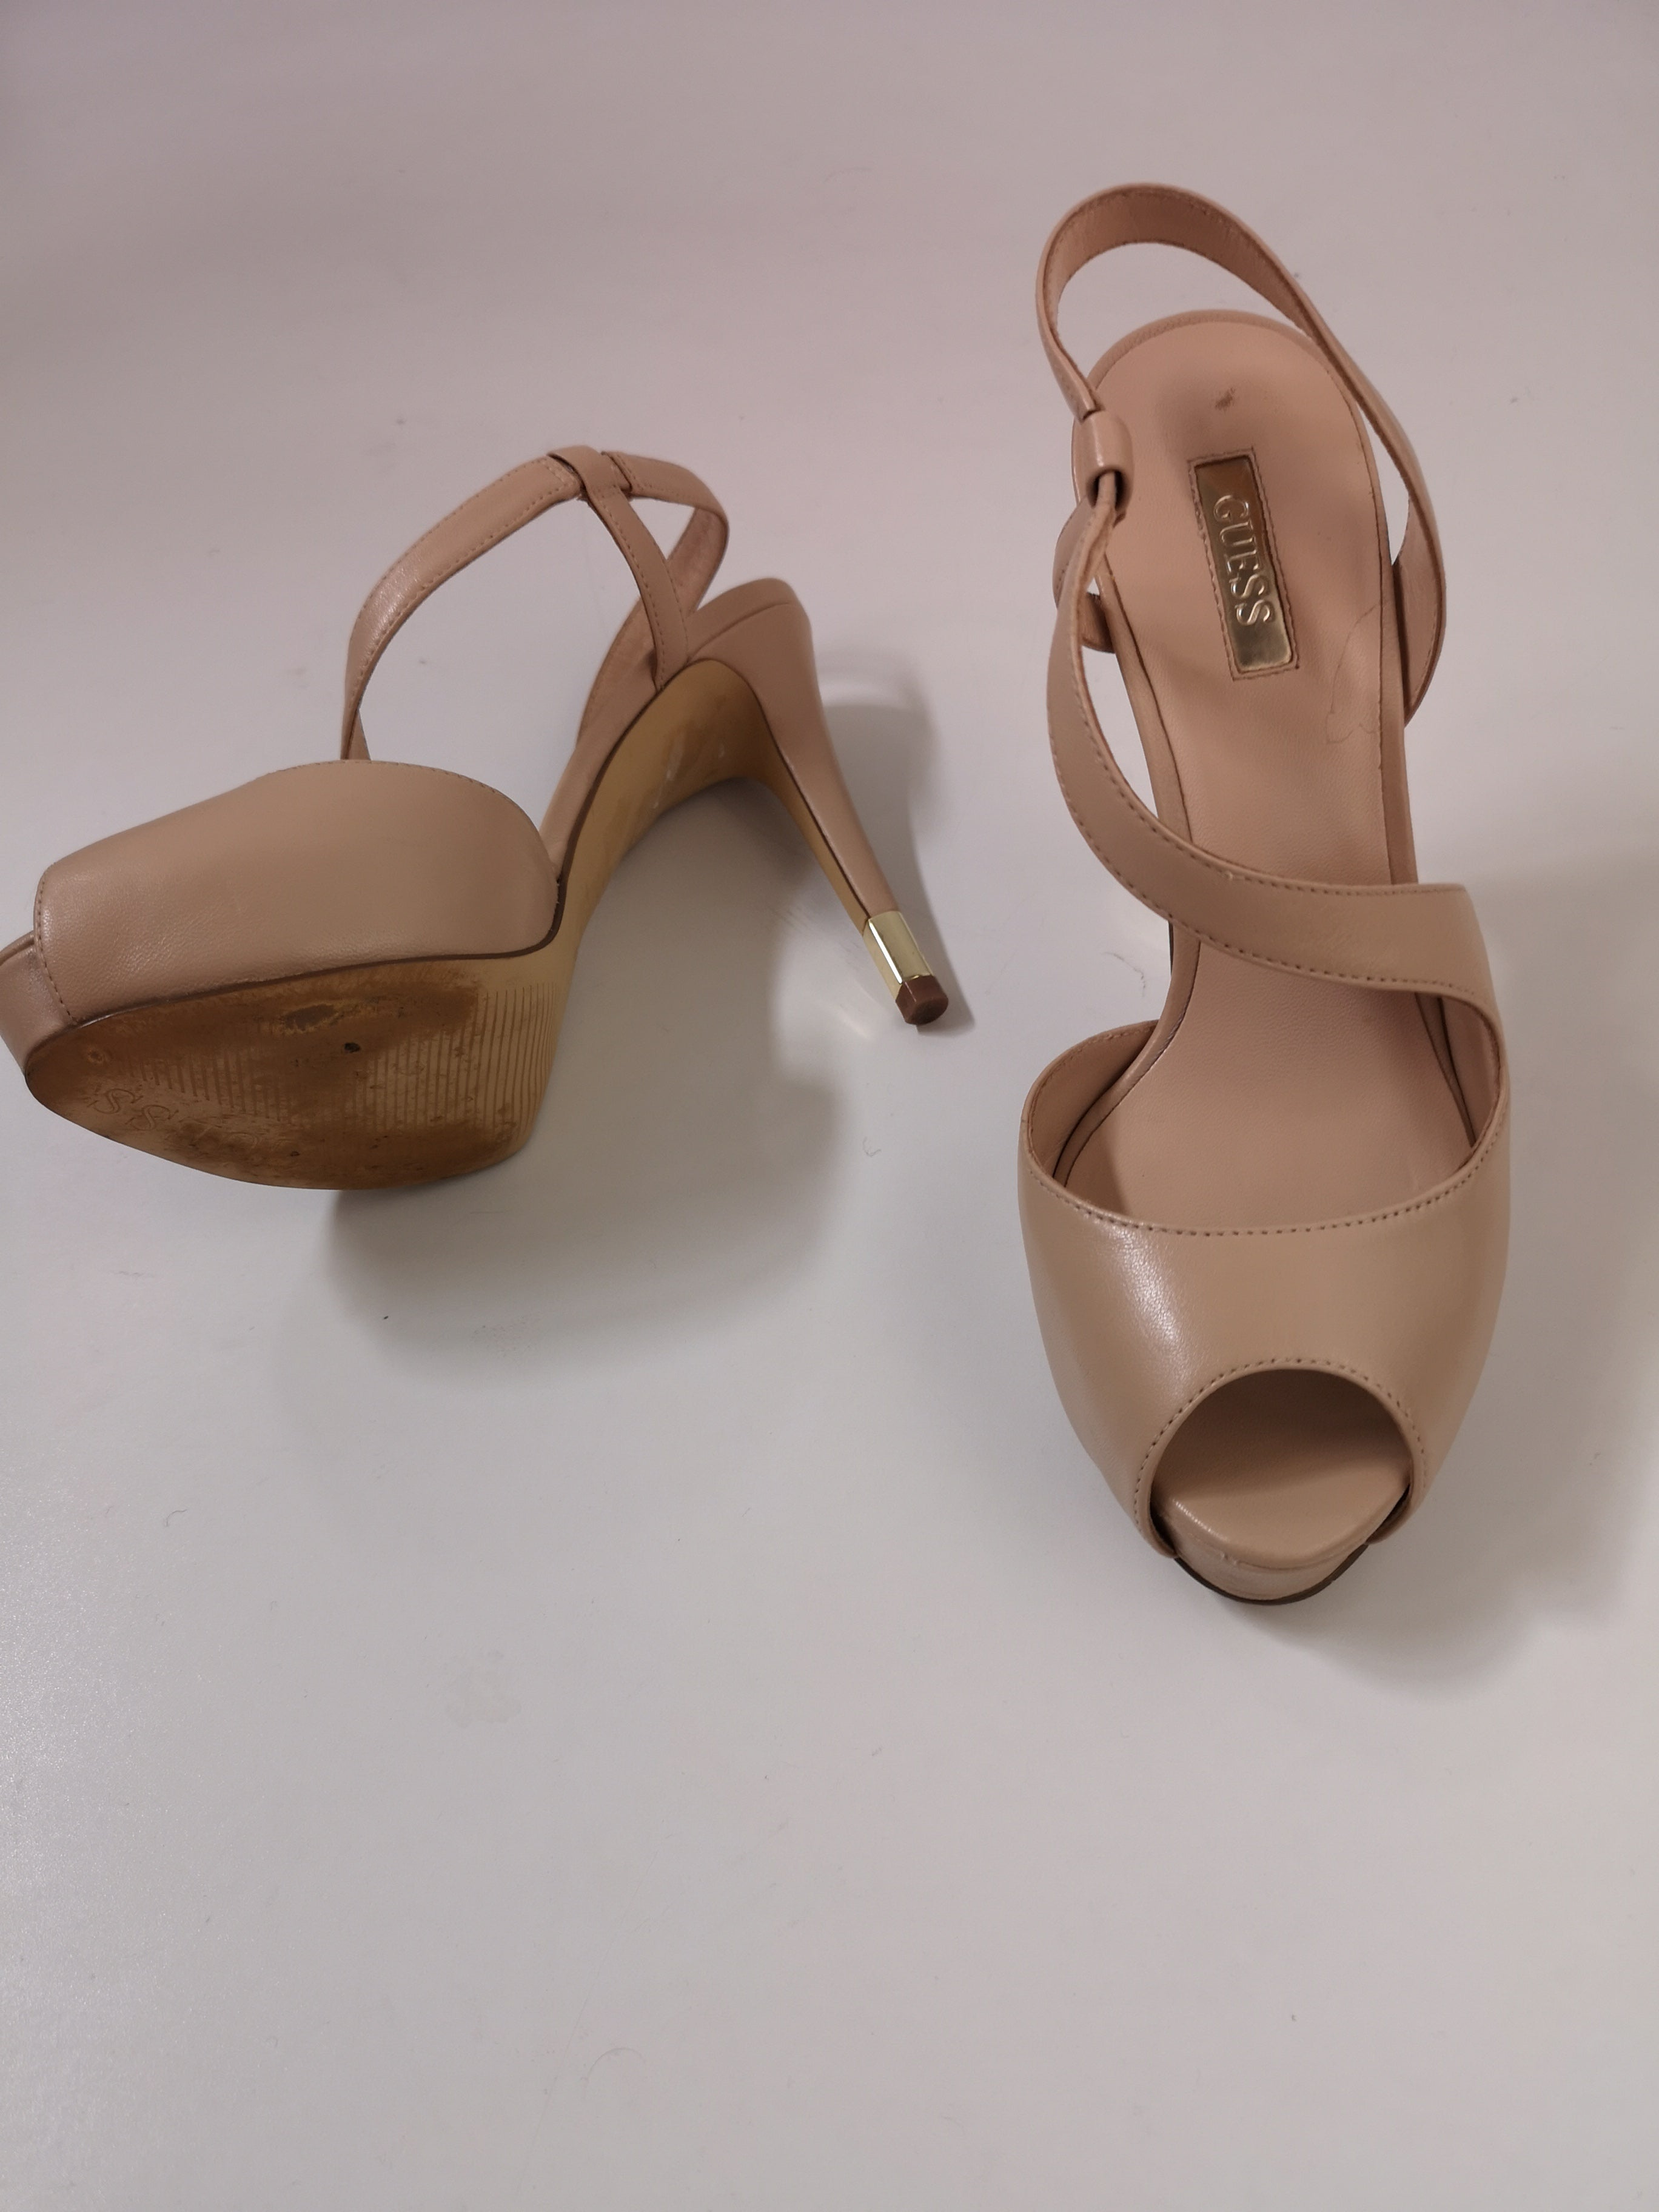 Guess Shoes, UK 4.5